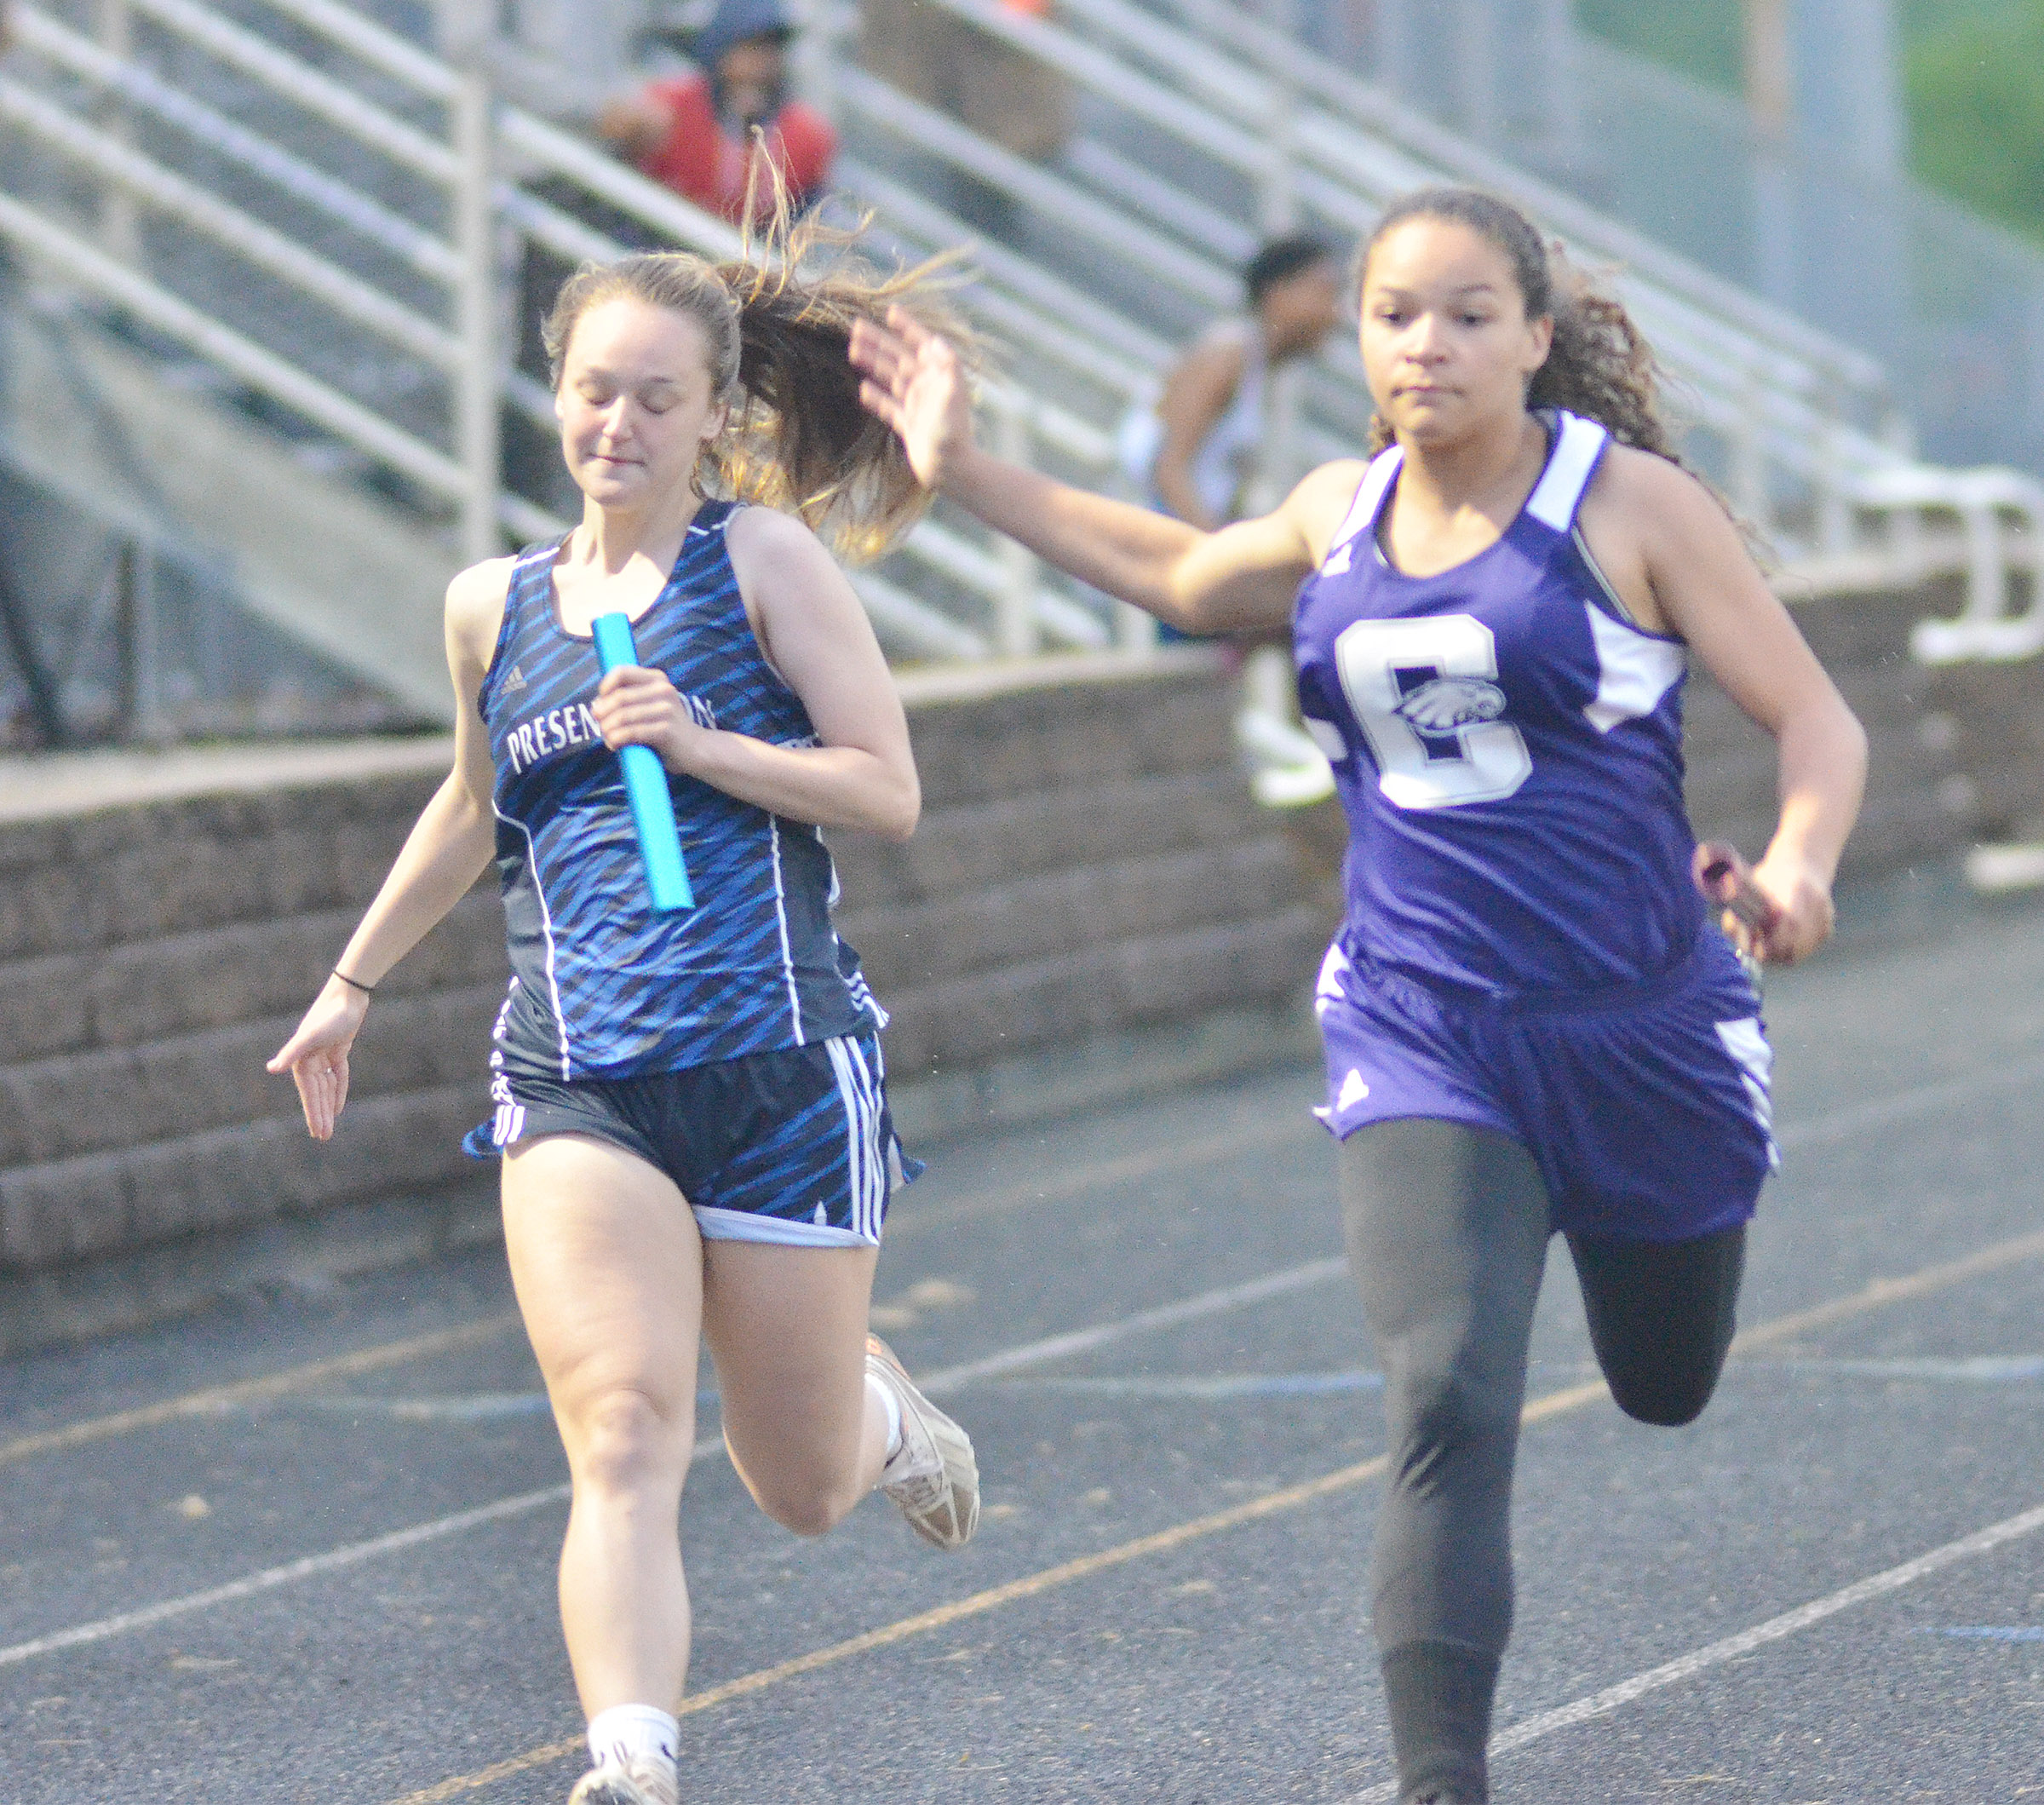 CHS freshman Taliyah Hazelwood finished second in the 200-meter dash at region competition, above, which qualified her to compete at this year's state meet. She finished fifth and set a personal record at 26.77 seconds.